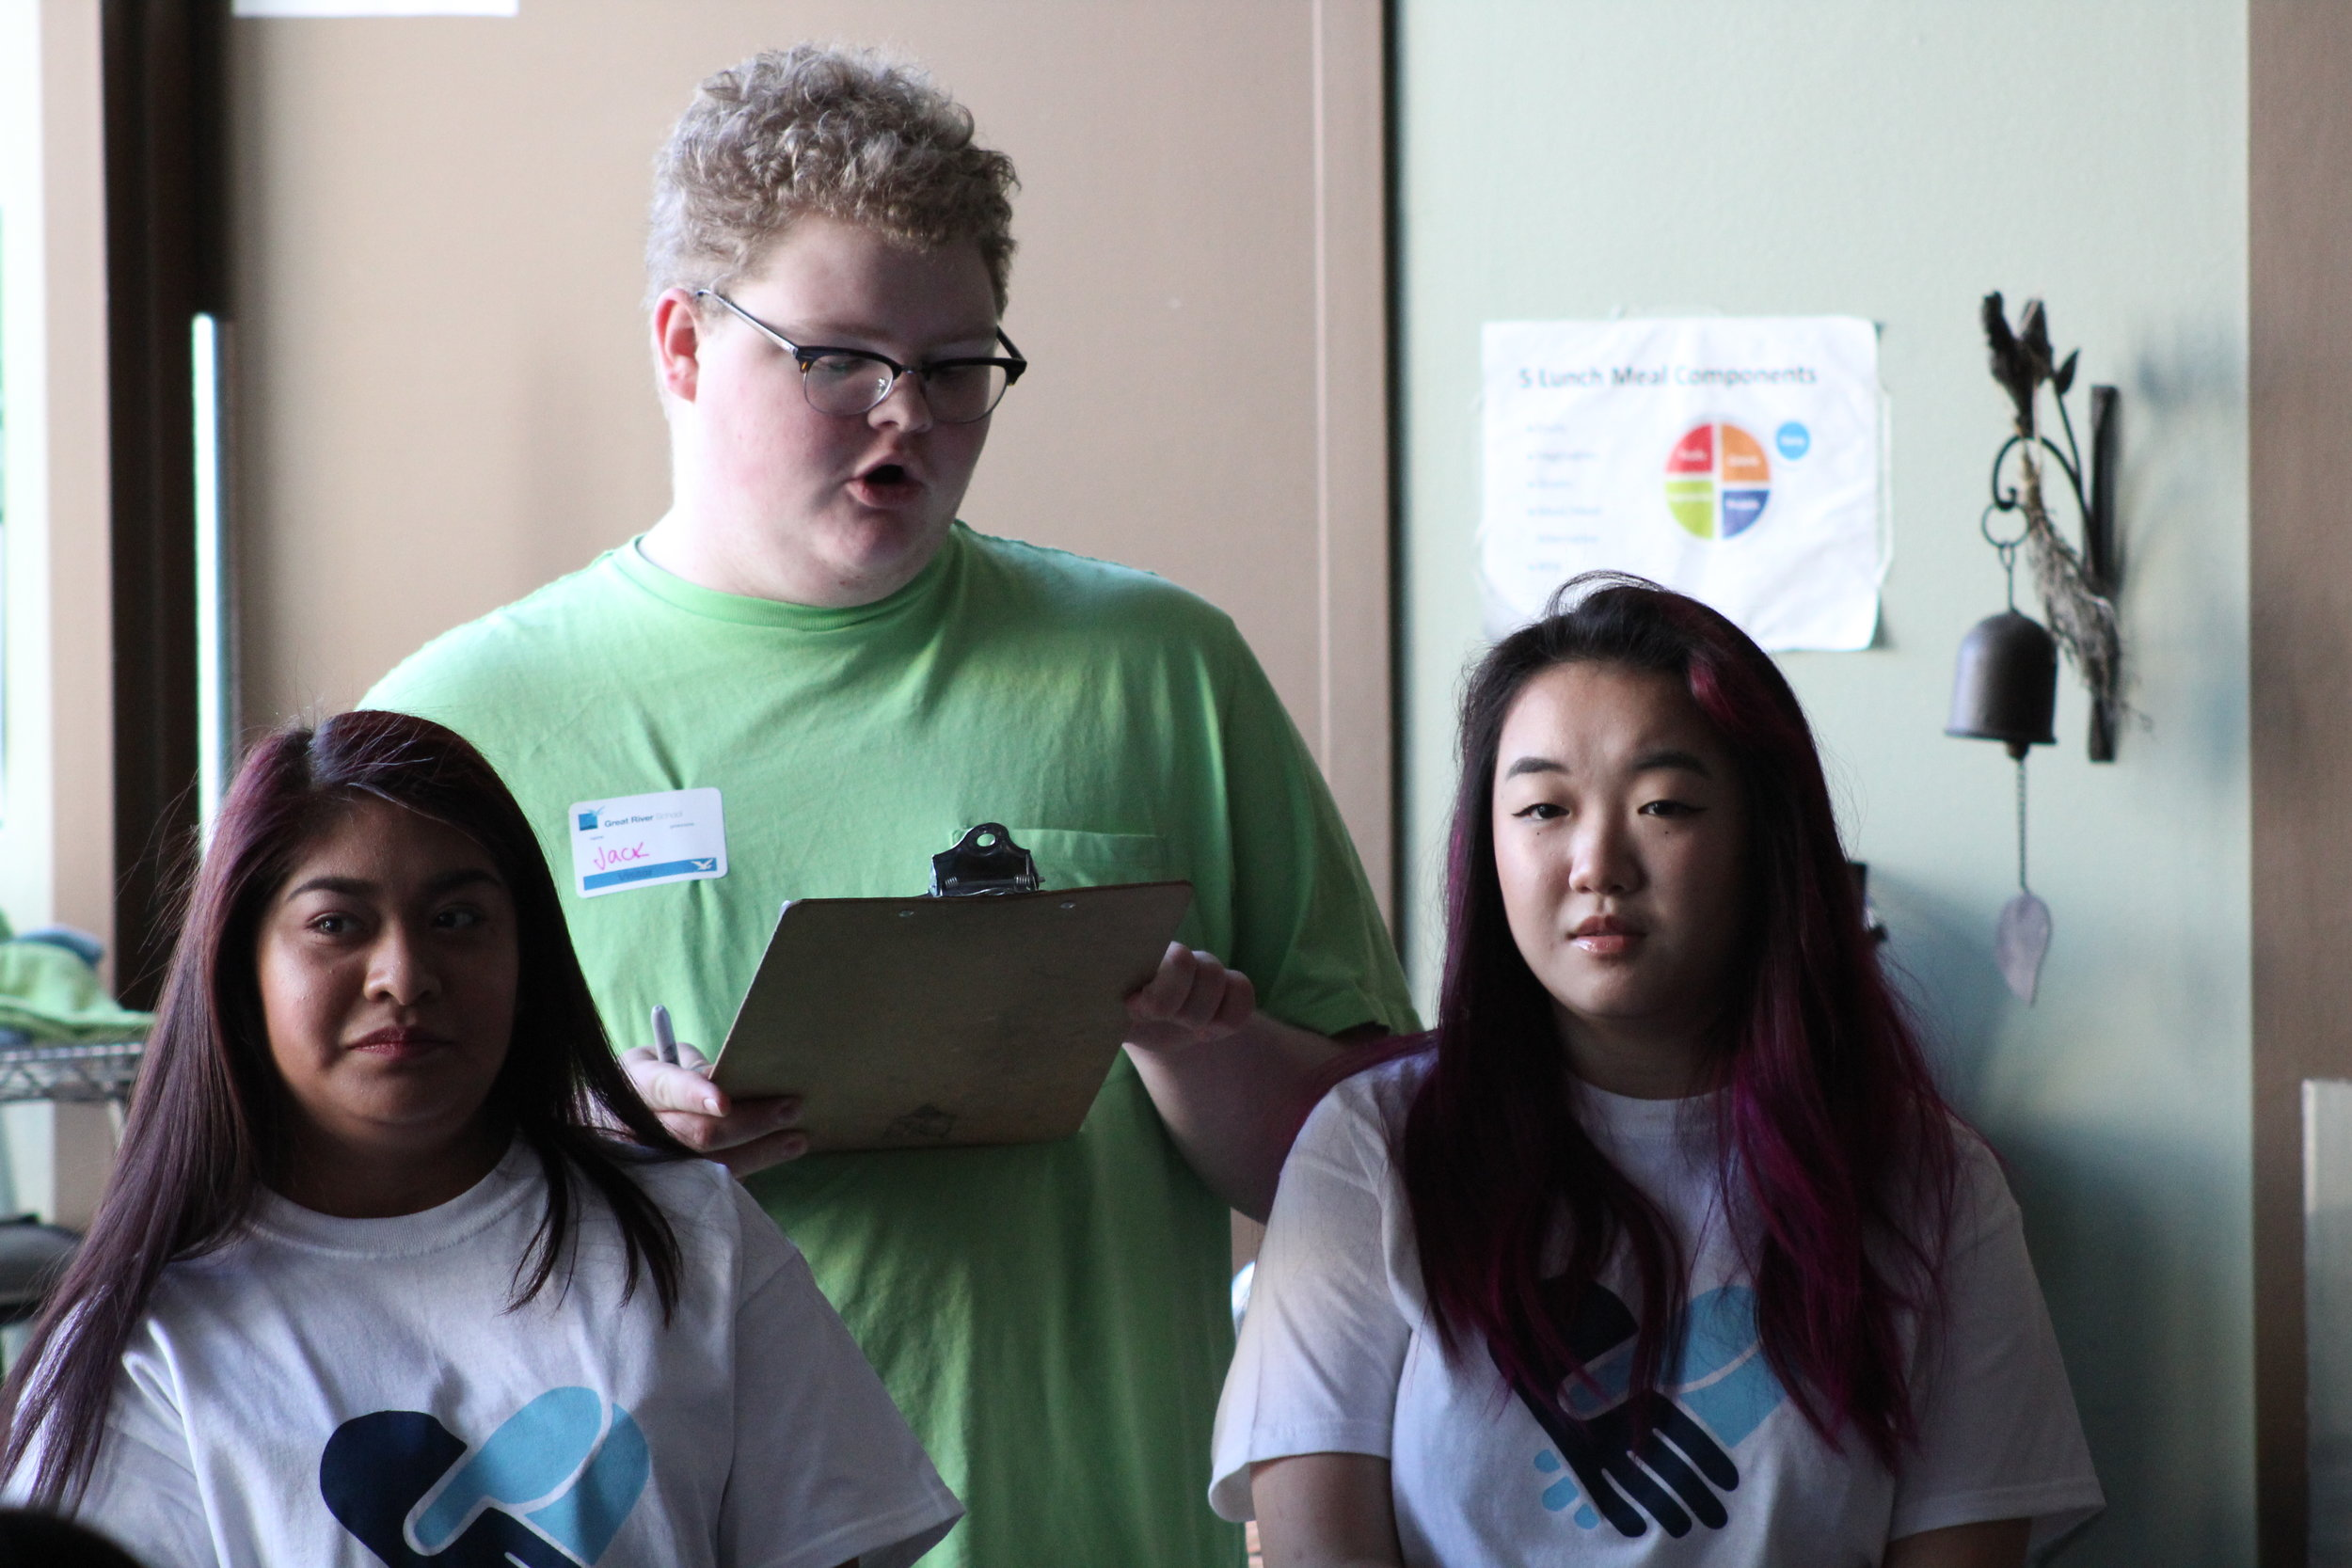 iRace student organizers Jack Spicer, Estefany Enriquez, and Britney Thao